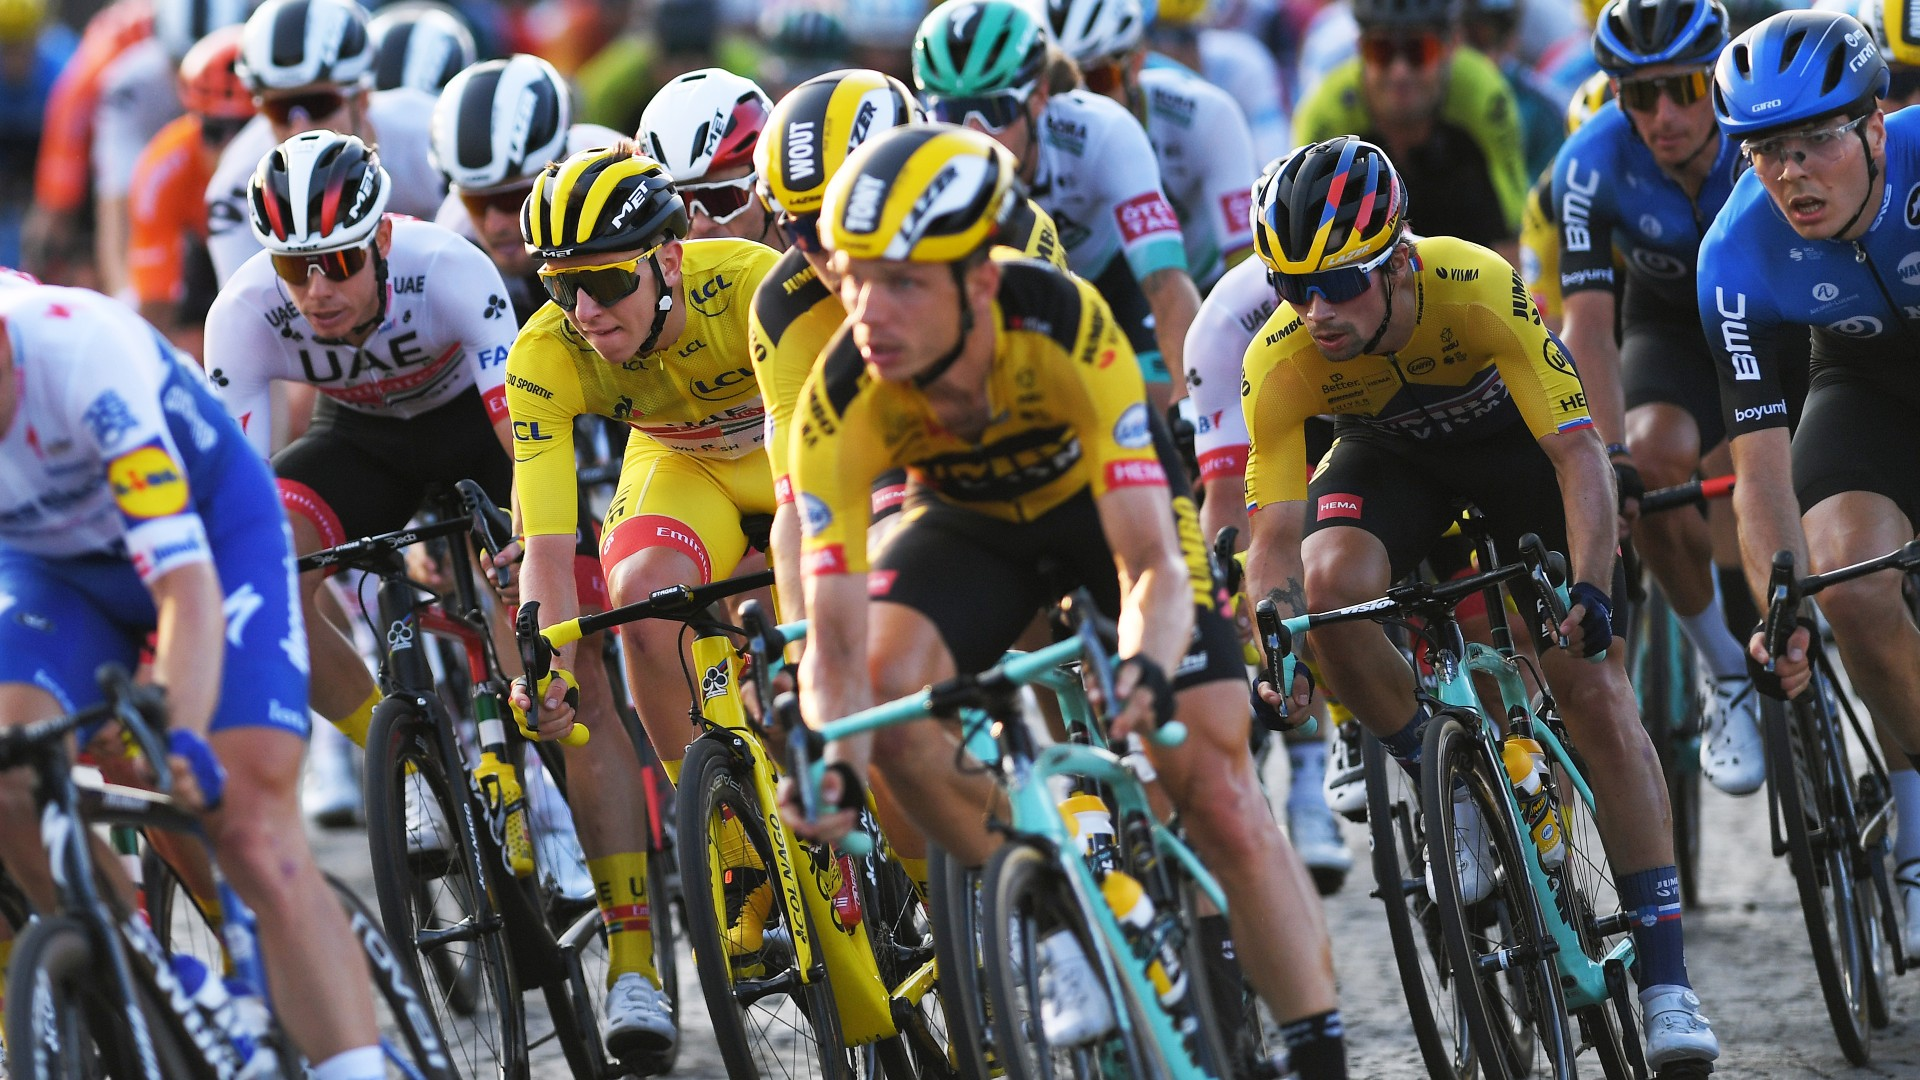 Tour de France 2021: Full schedule, stages, route, length, TV channel & live stream